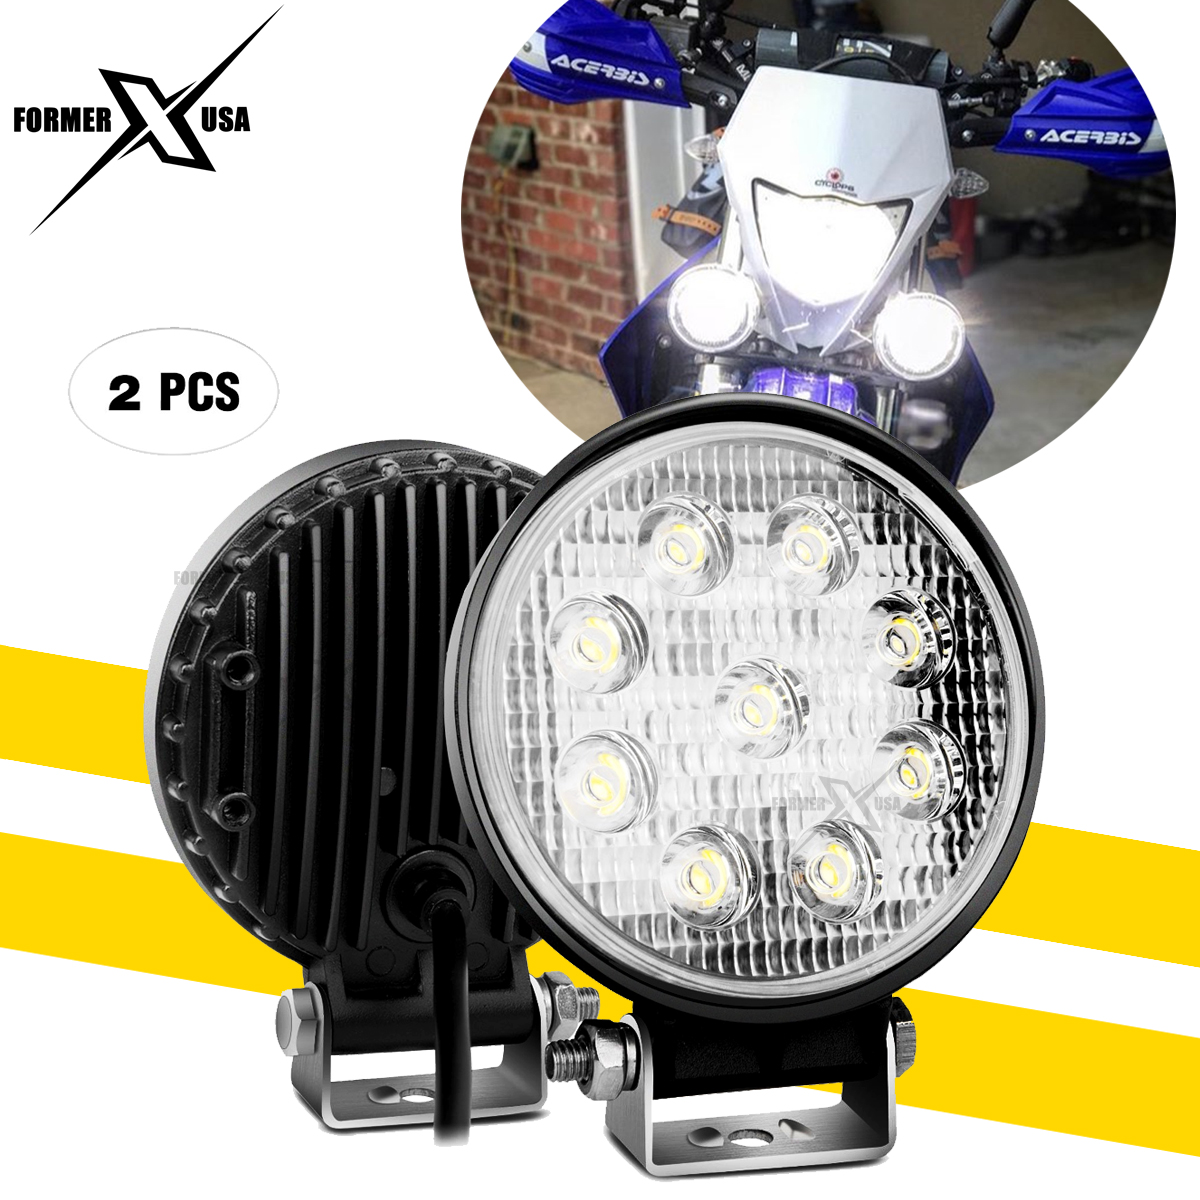 Chrome perfk 1 Pair 4 inch Driving Fog Spot Light Spotlight Headlight Work Lamp Universal for All Motorcycle Motorbike ATV Trucks